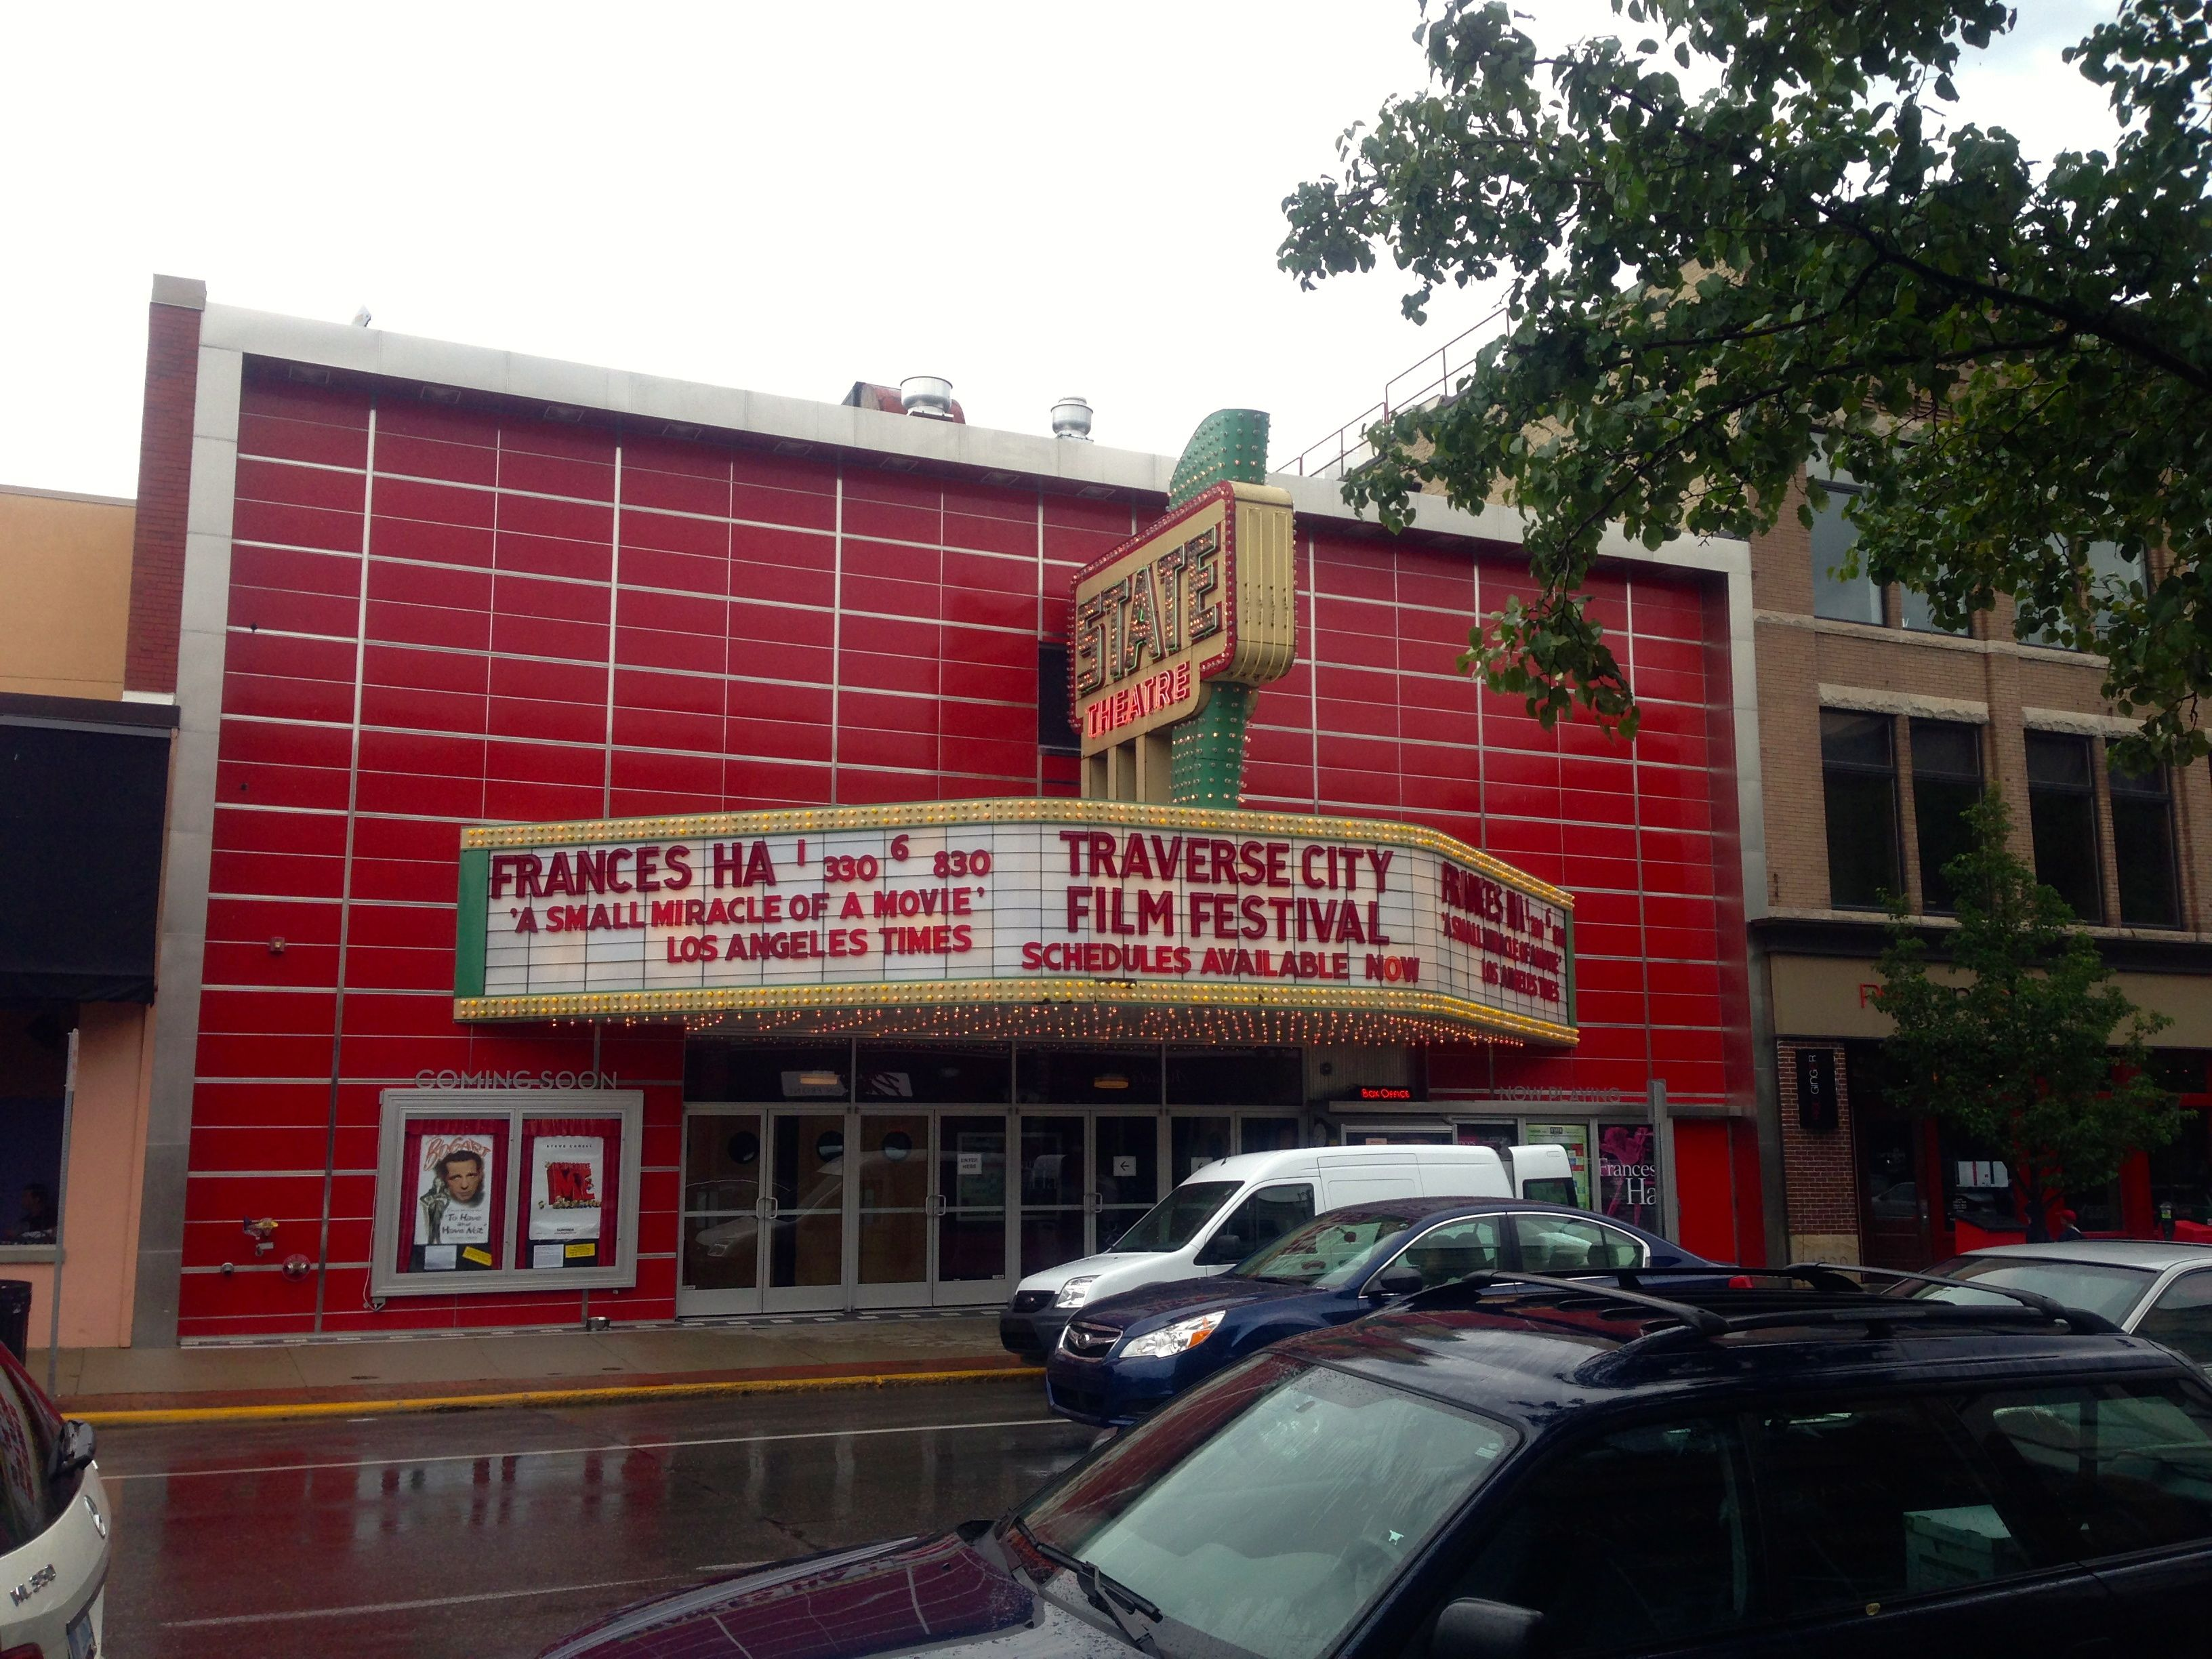 Movie festival in downtown traverse city frances ha